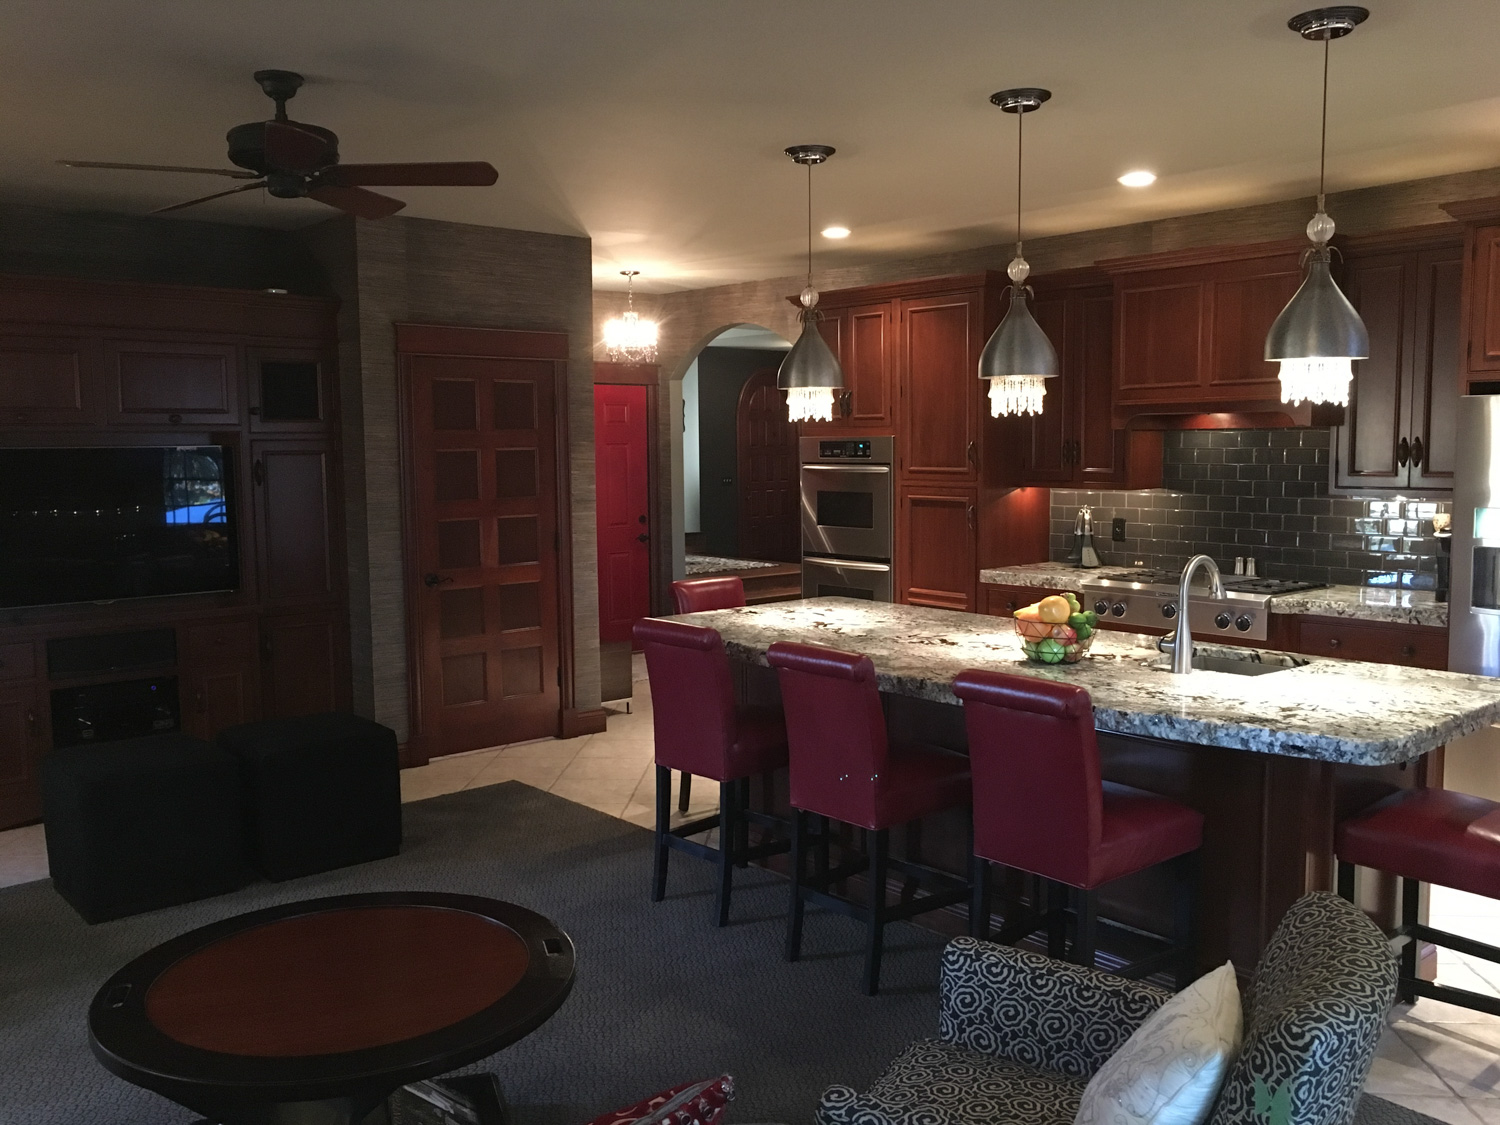 Before - amateur photograph of kitchen